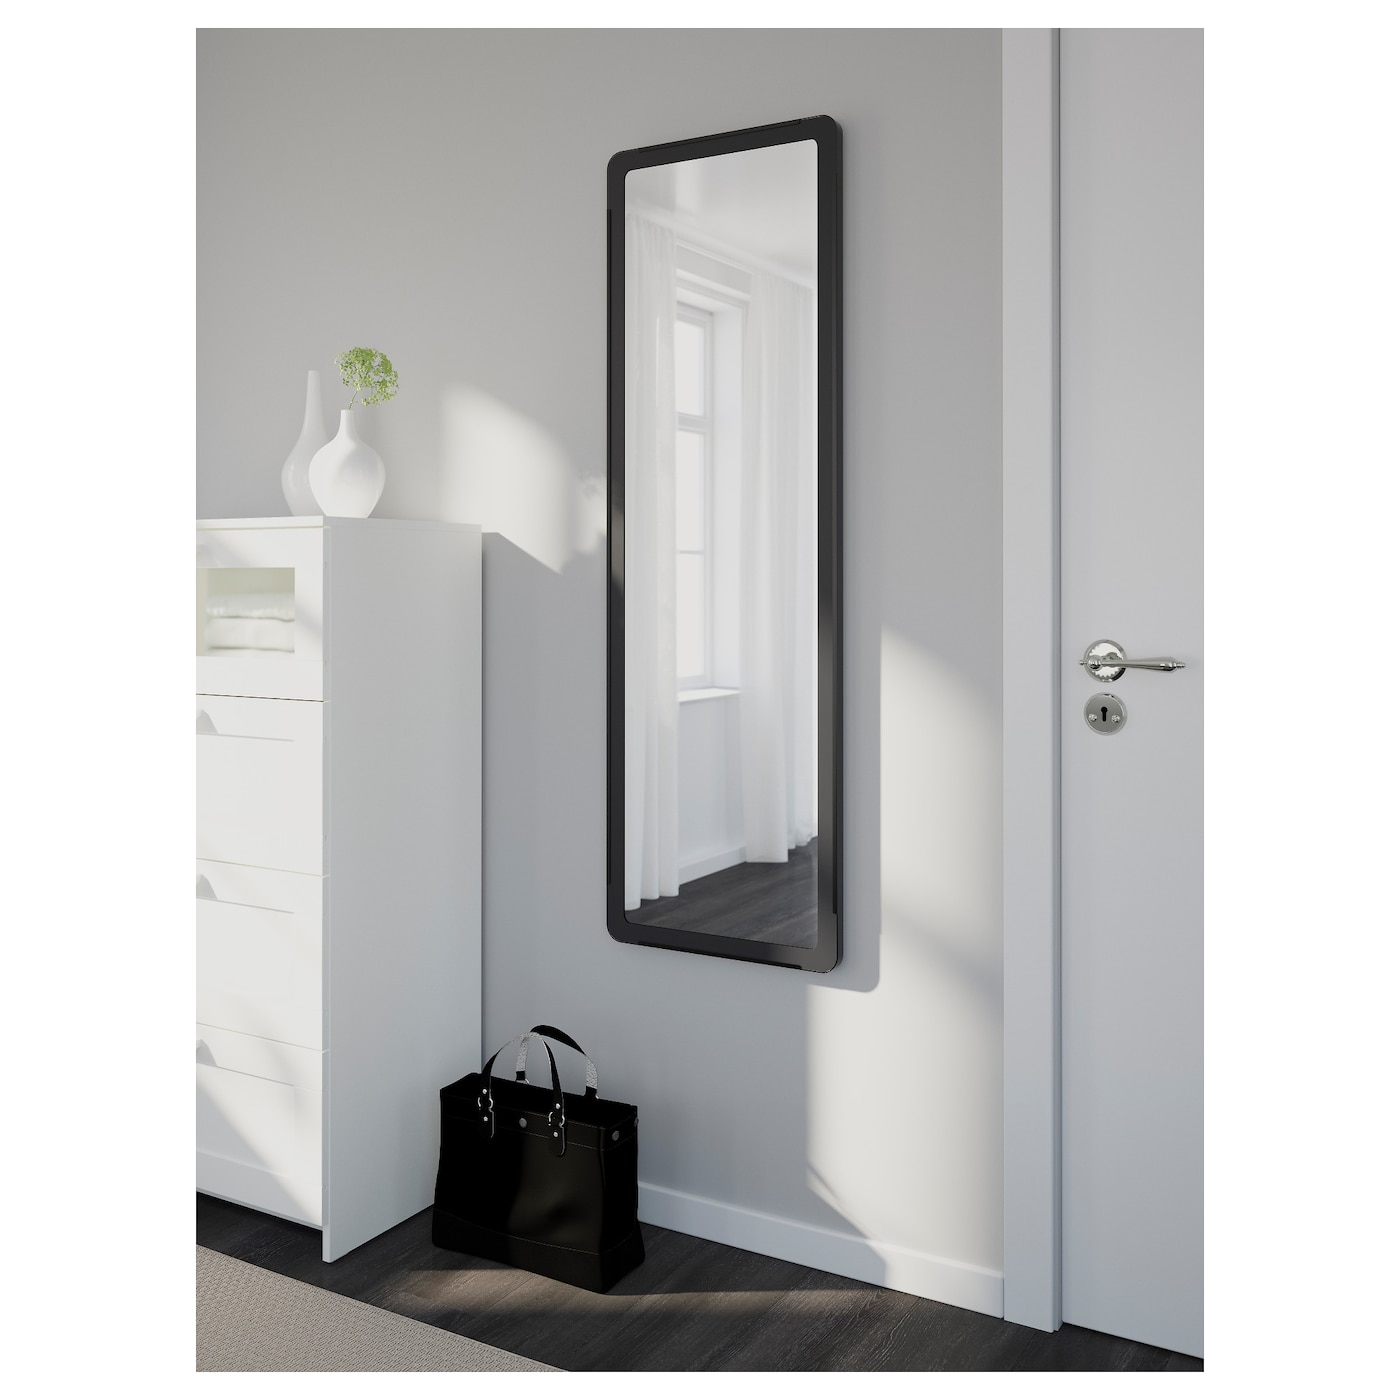 Grua mirror black 45x140 cm ikea for Miroir ikea noir